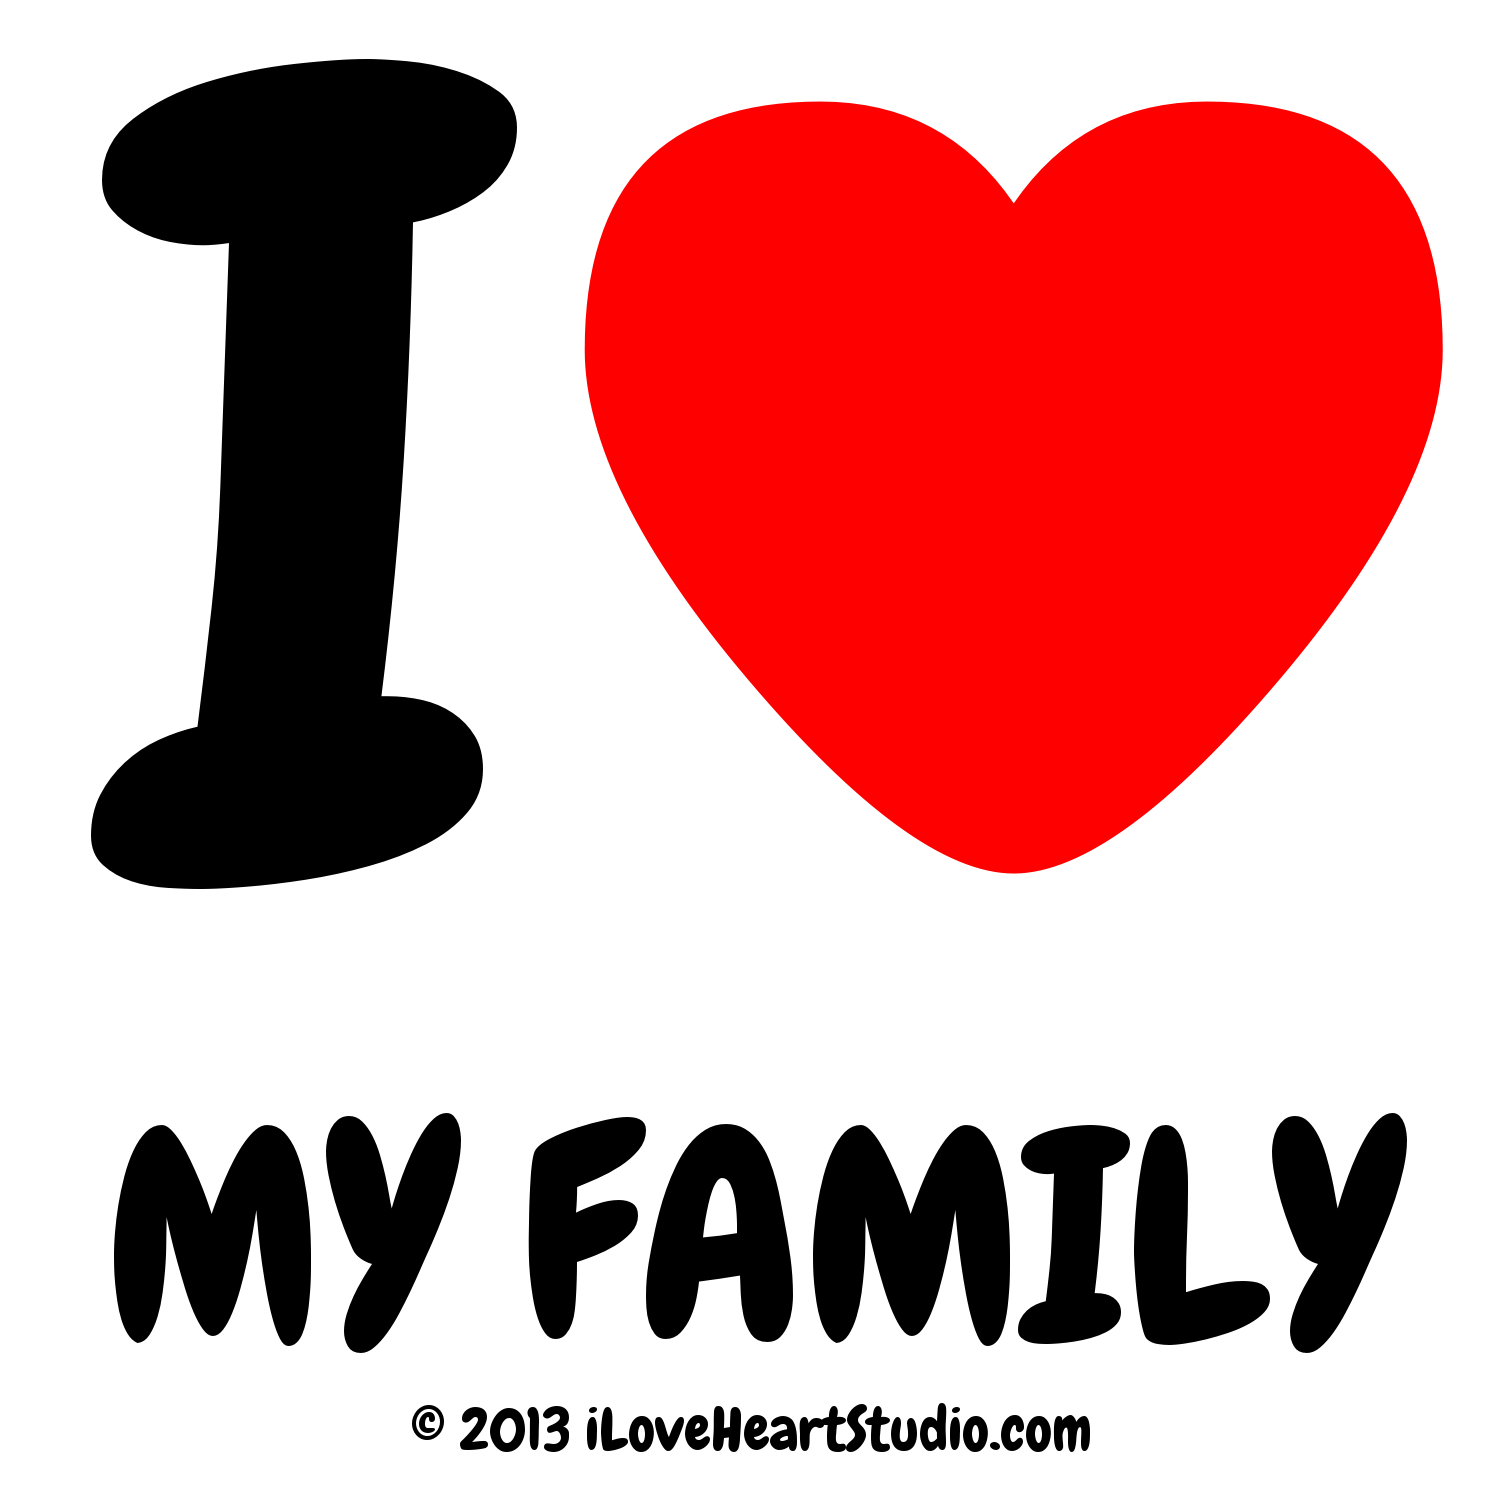 New Gallery of I Love My Family Pictures All Wallpapers are 1500x1500